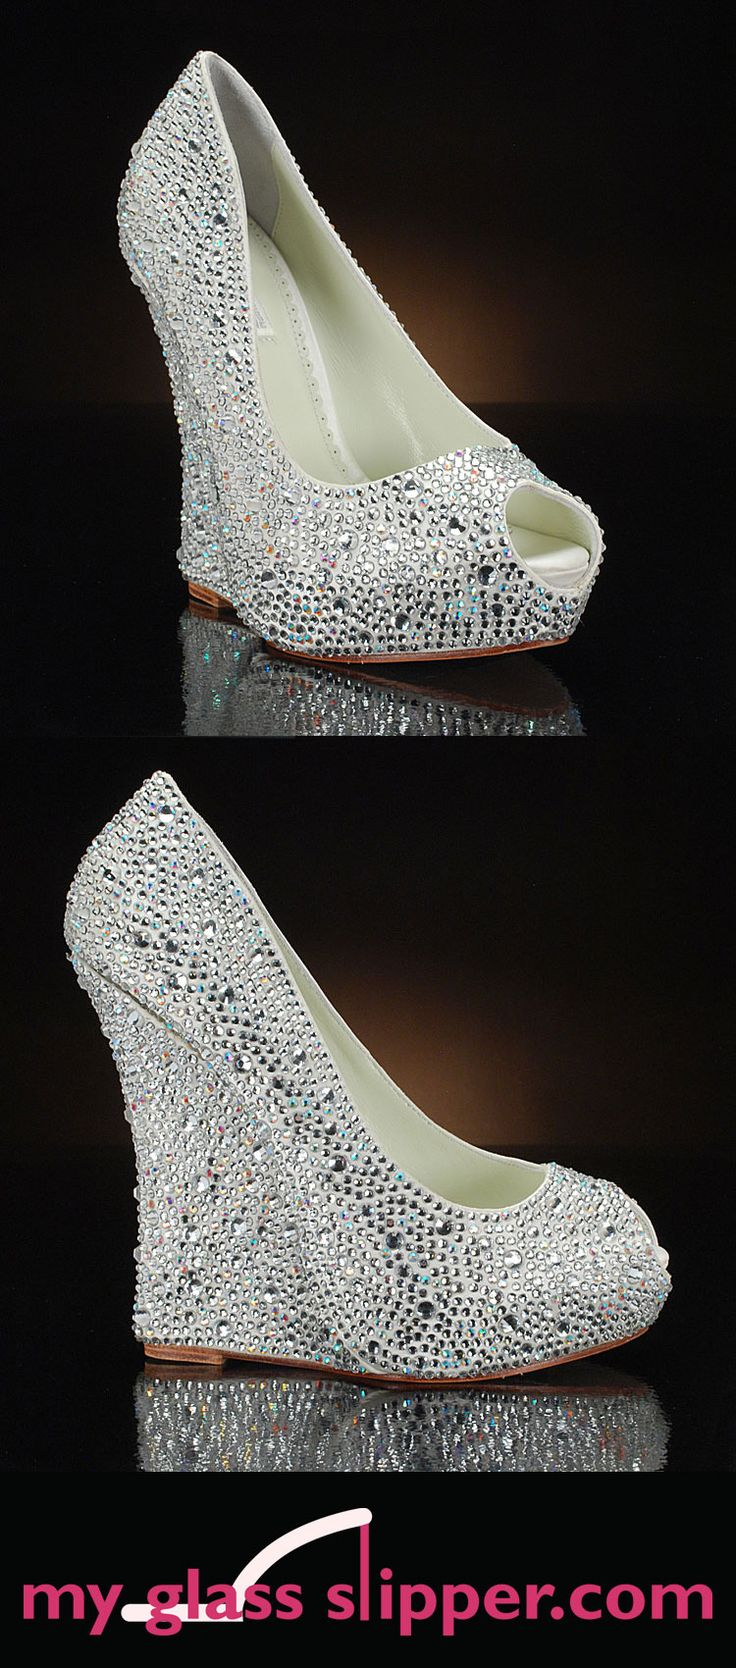 MILA by BENJAMIN ADAMS:   Comfortable wedge wedding shoes with serious sparkle! These sparkly wedding shoes from Benjamin Adams London are covered all over with dazzling Swarovski crystals. A glamorous tall shoe you can dance in too? Perfection! $449     http://www.myglassslipper.com/wedding-shoes/benjamin-adams/mila-7868